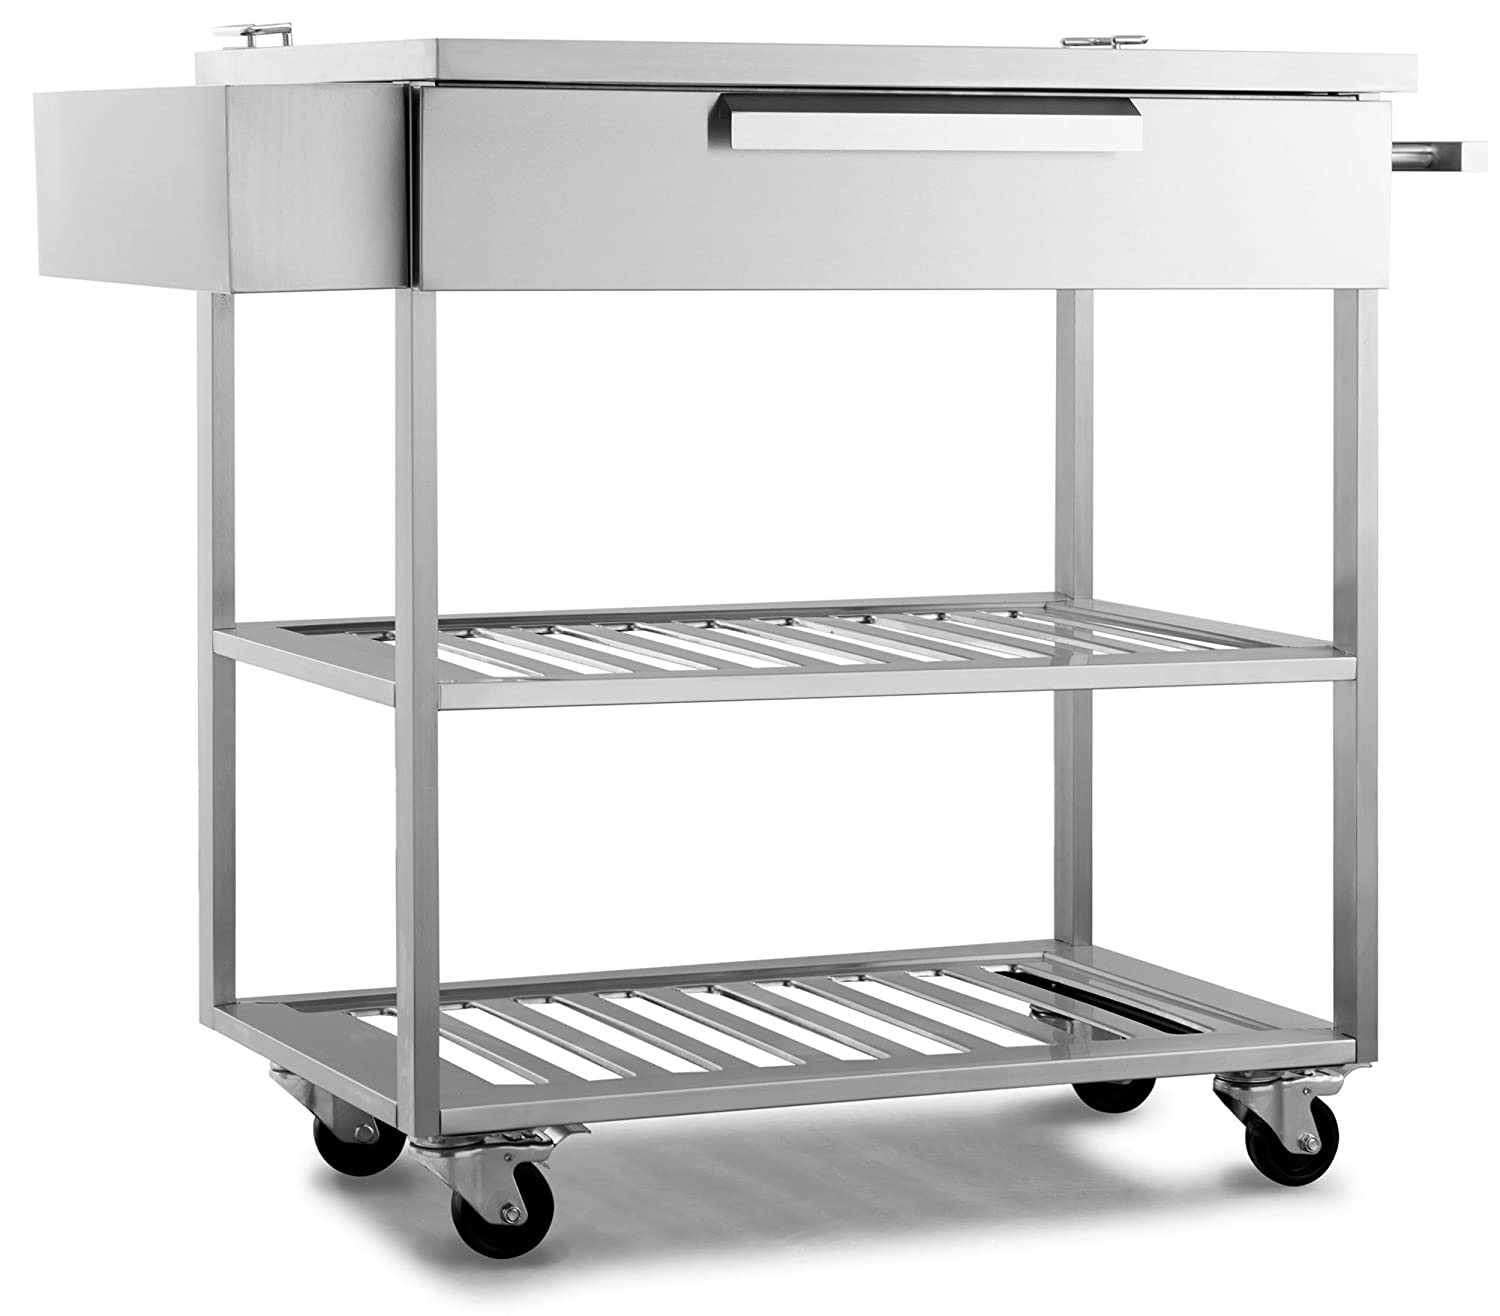 NewAge Products Inc. Outdoor Kitchen Storage, Stainless Steel